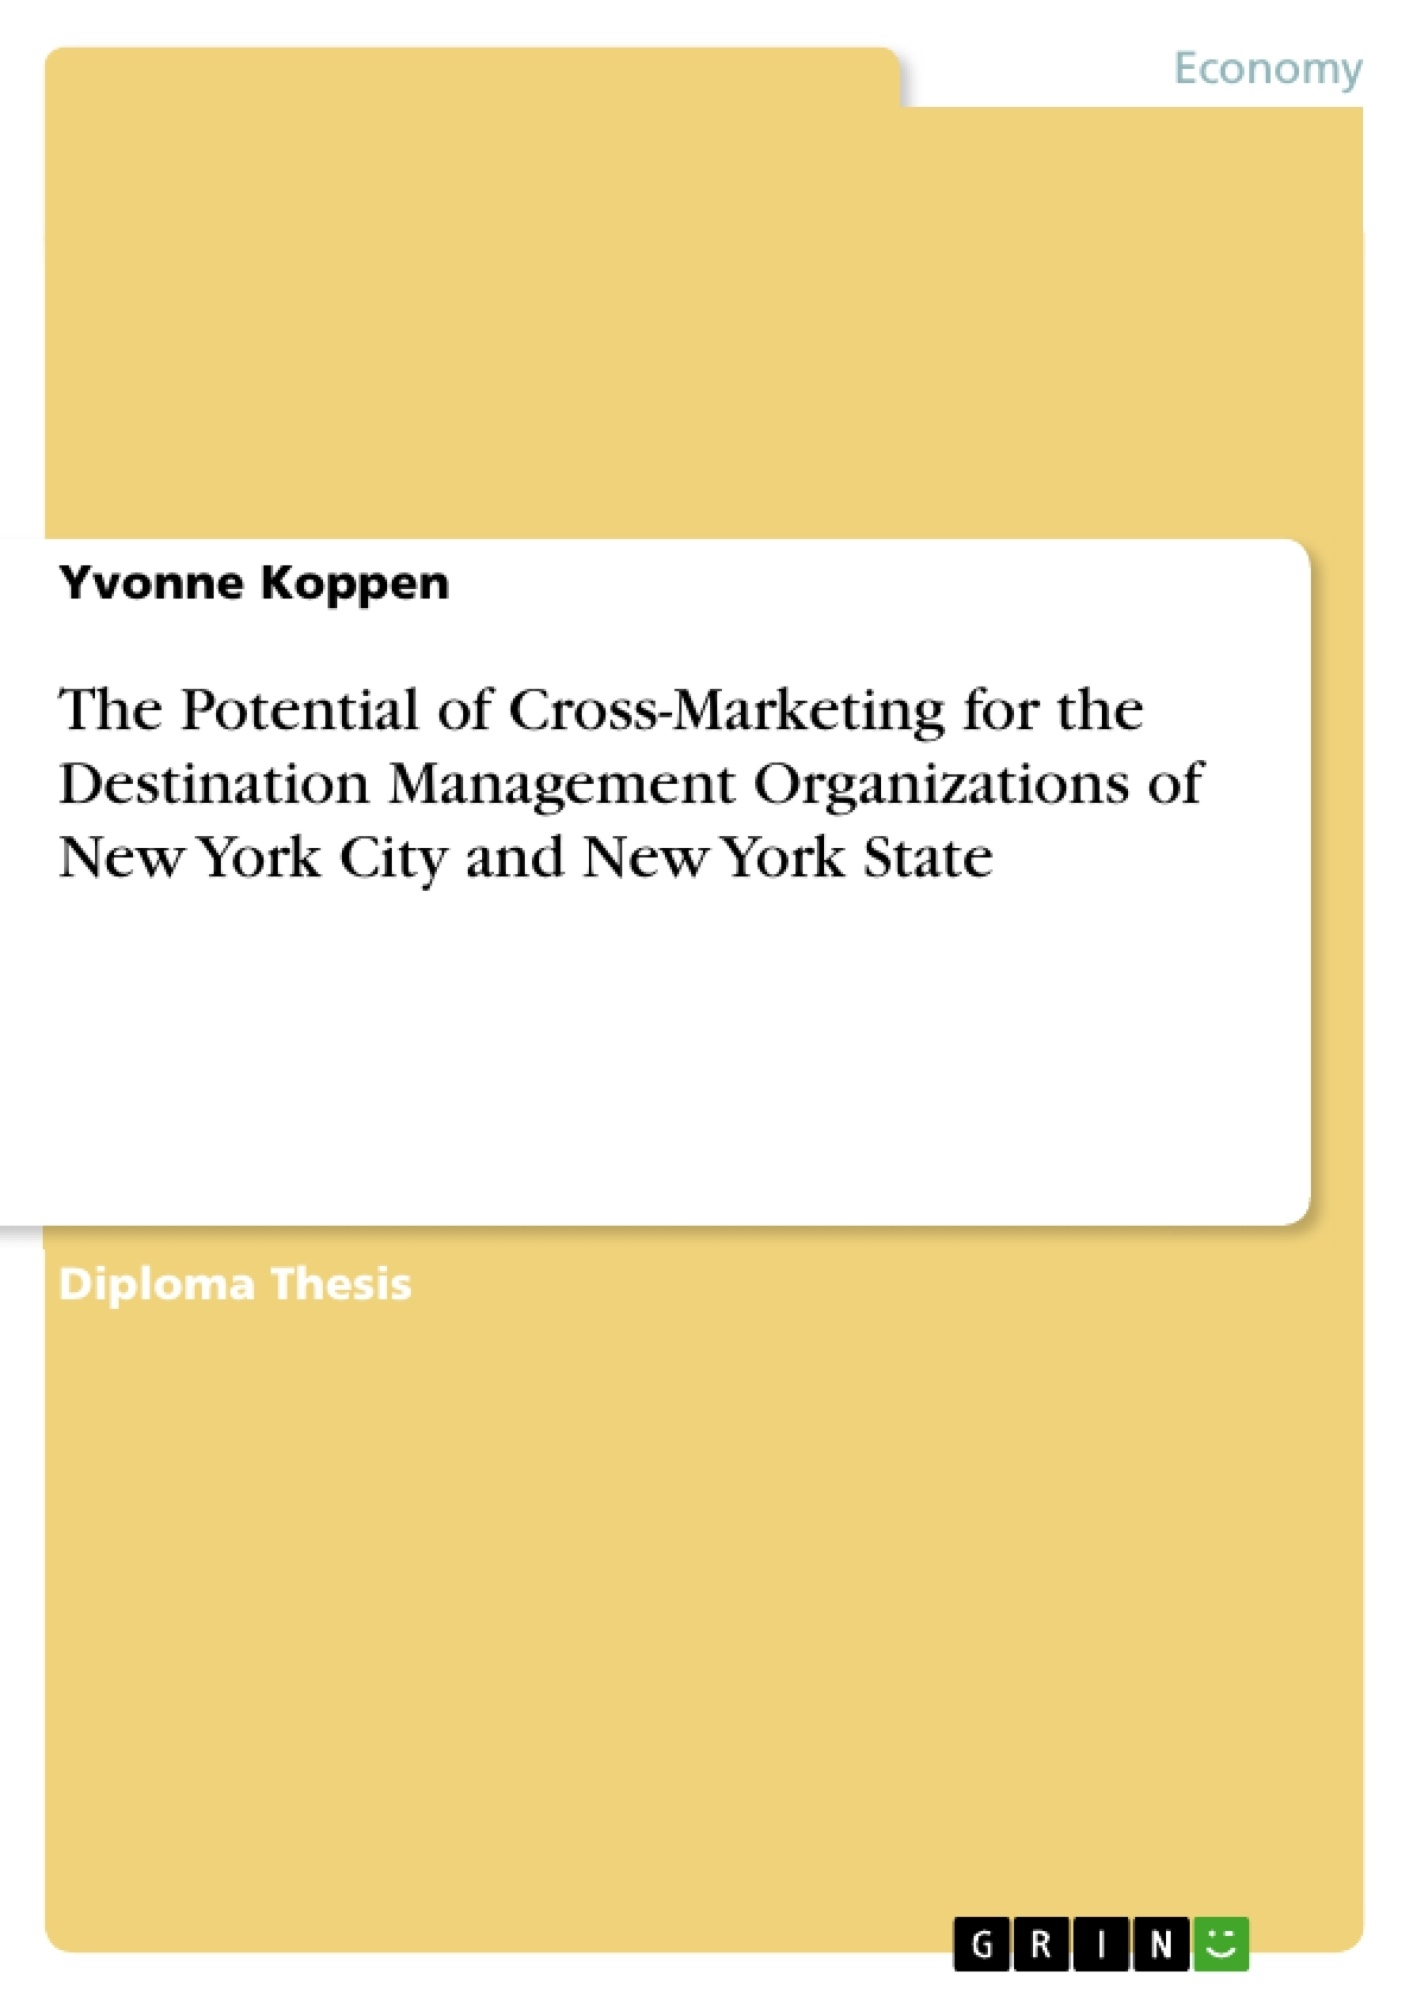 Title: The Potential of Cross-Marketing for the Destination Management Organizations of New York City and New York State